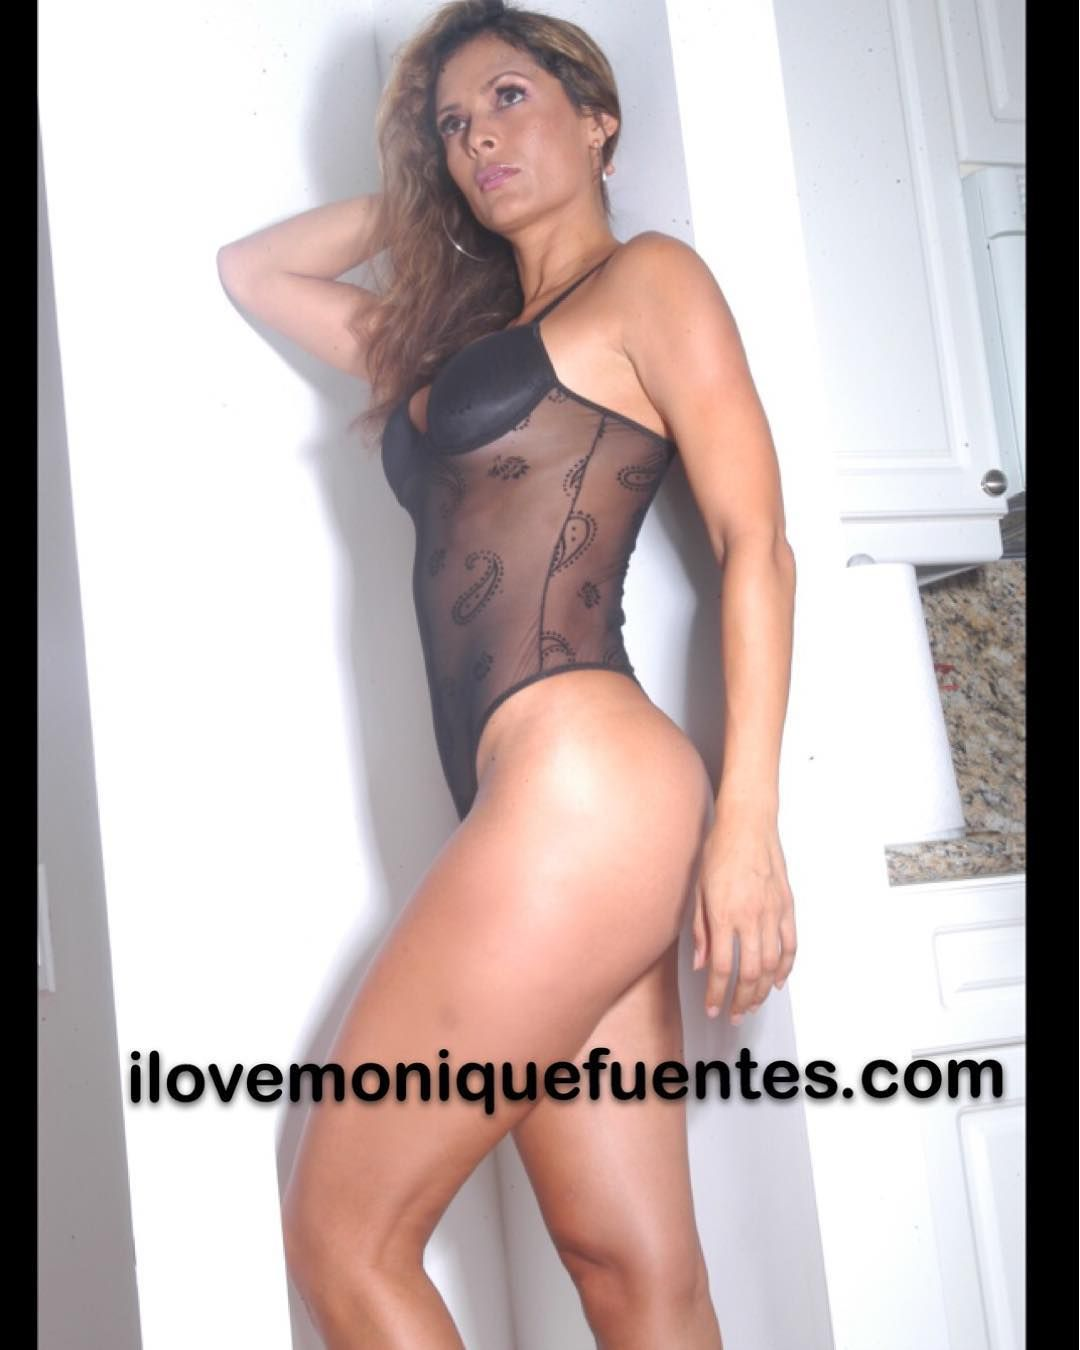 monique fuentes pics